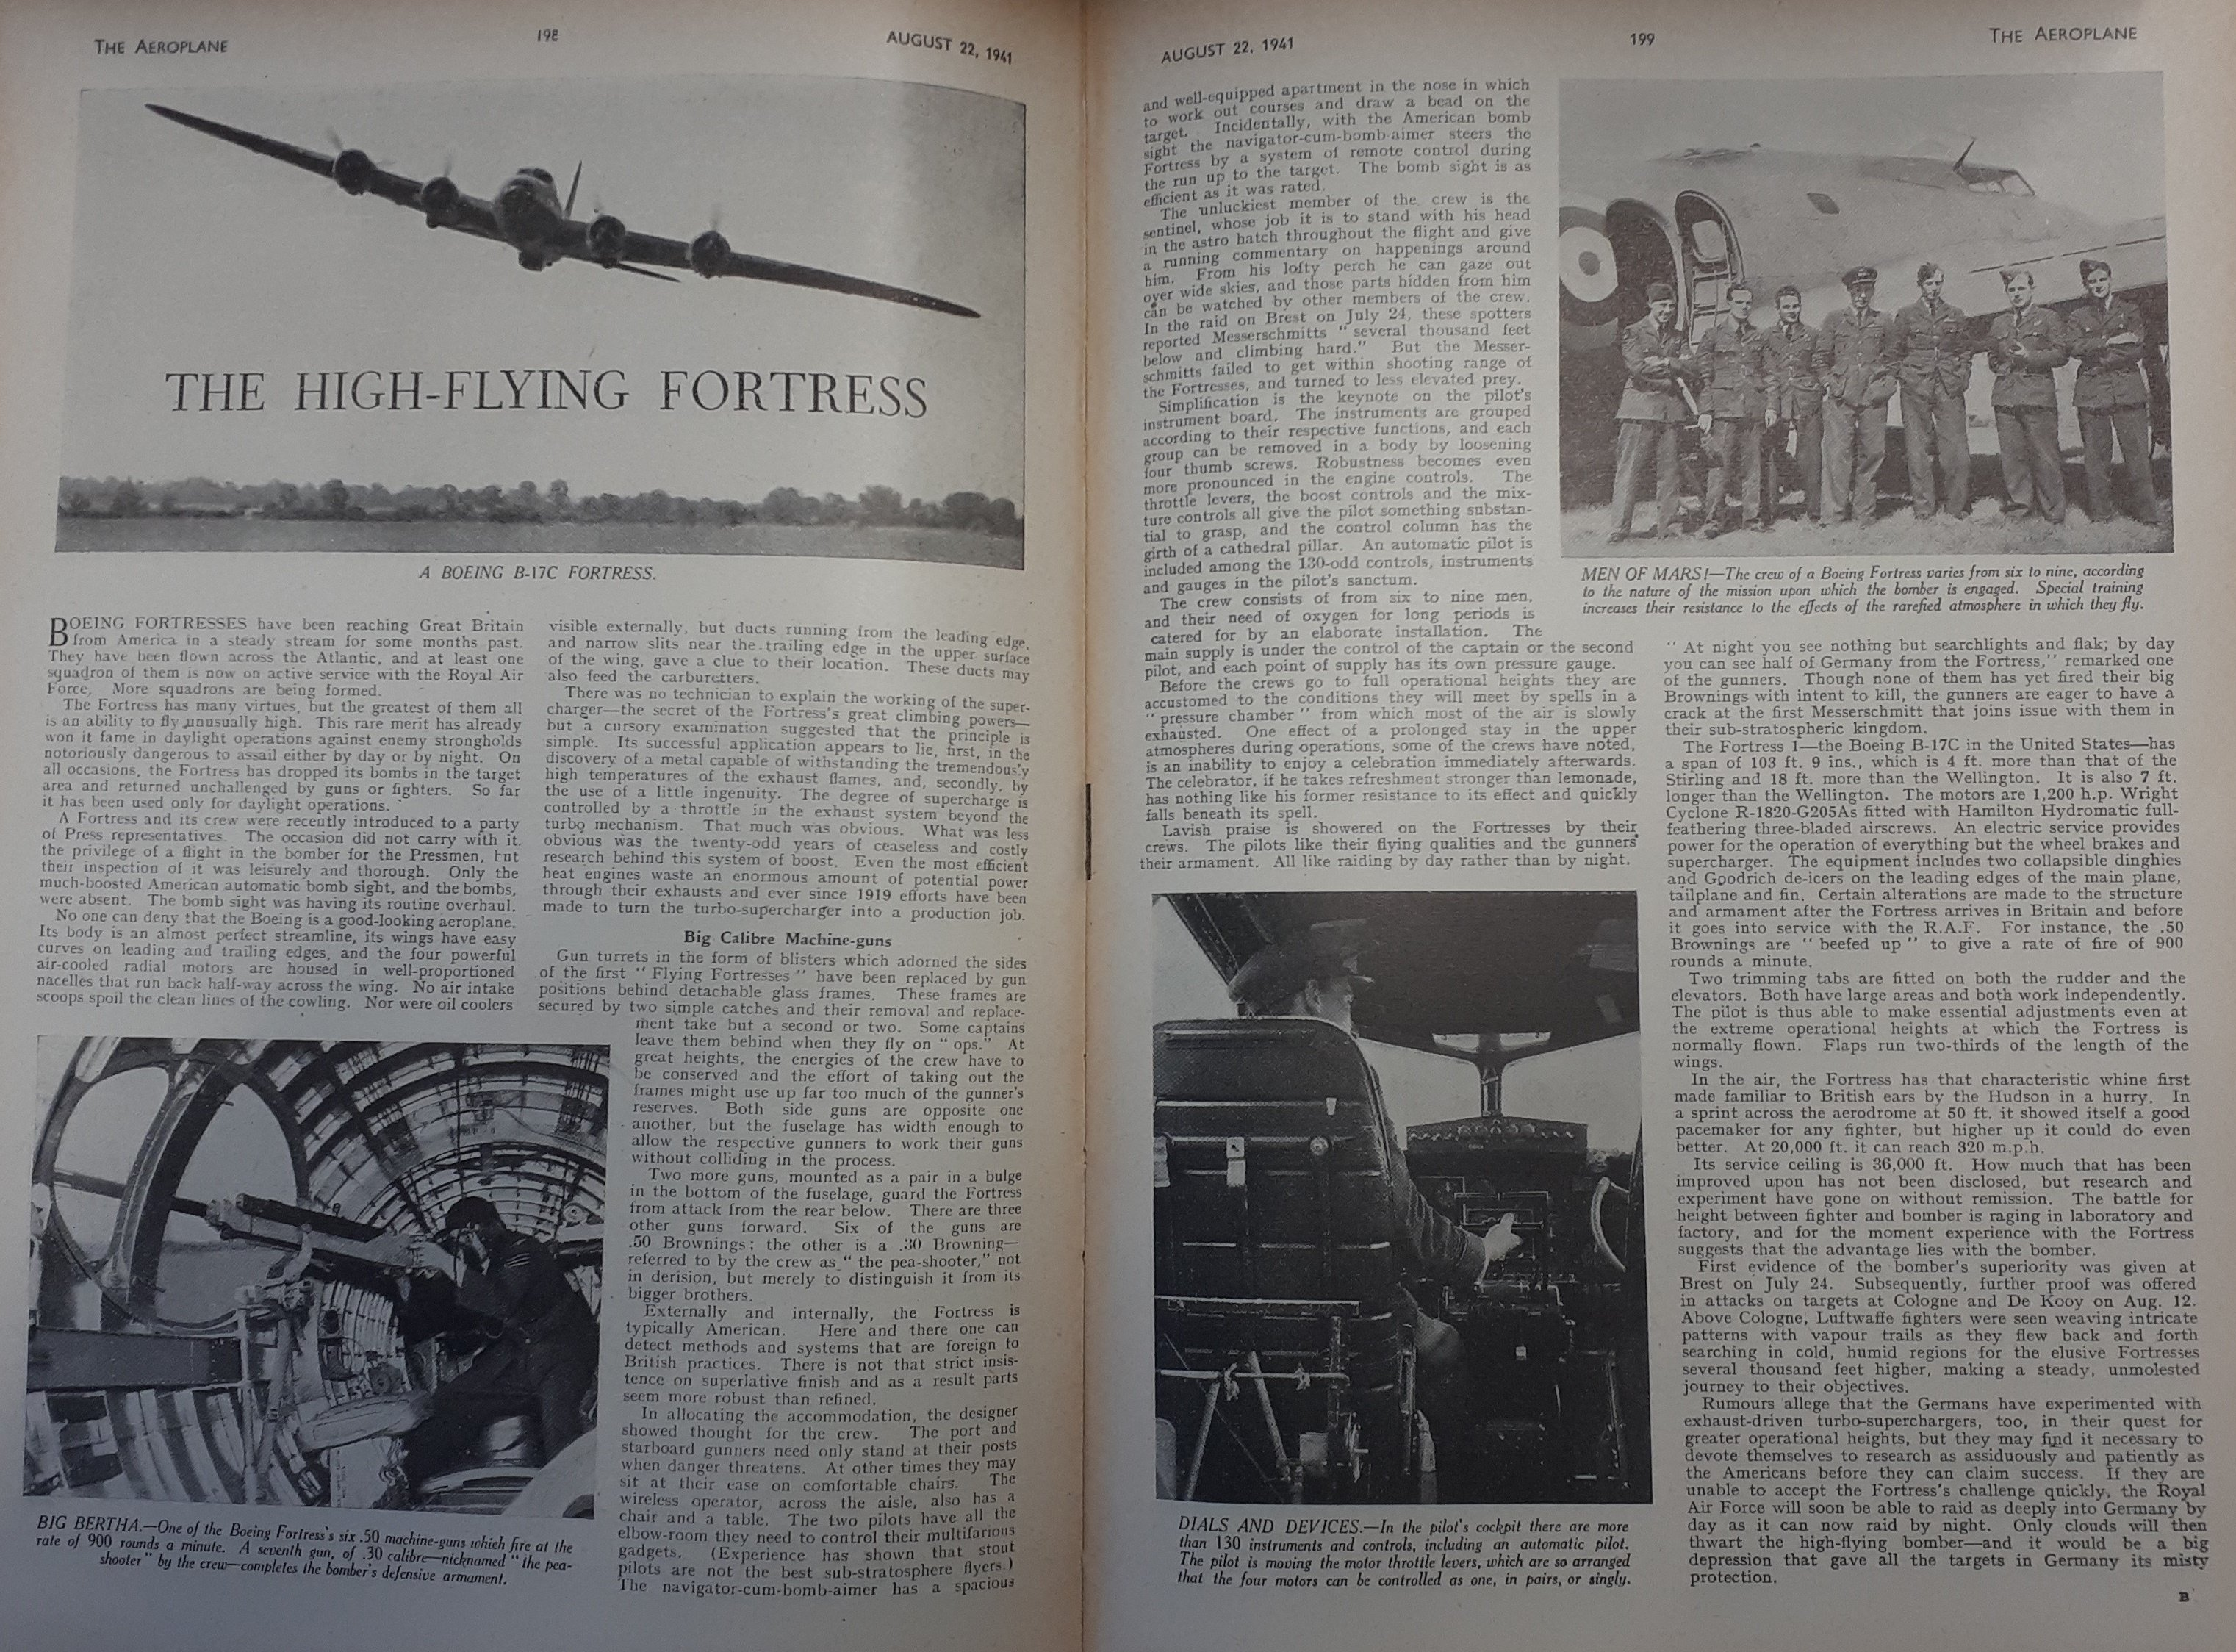 Overview of article